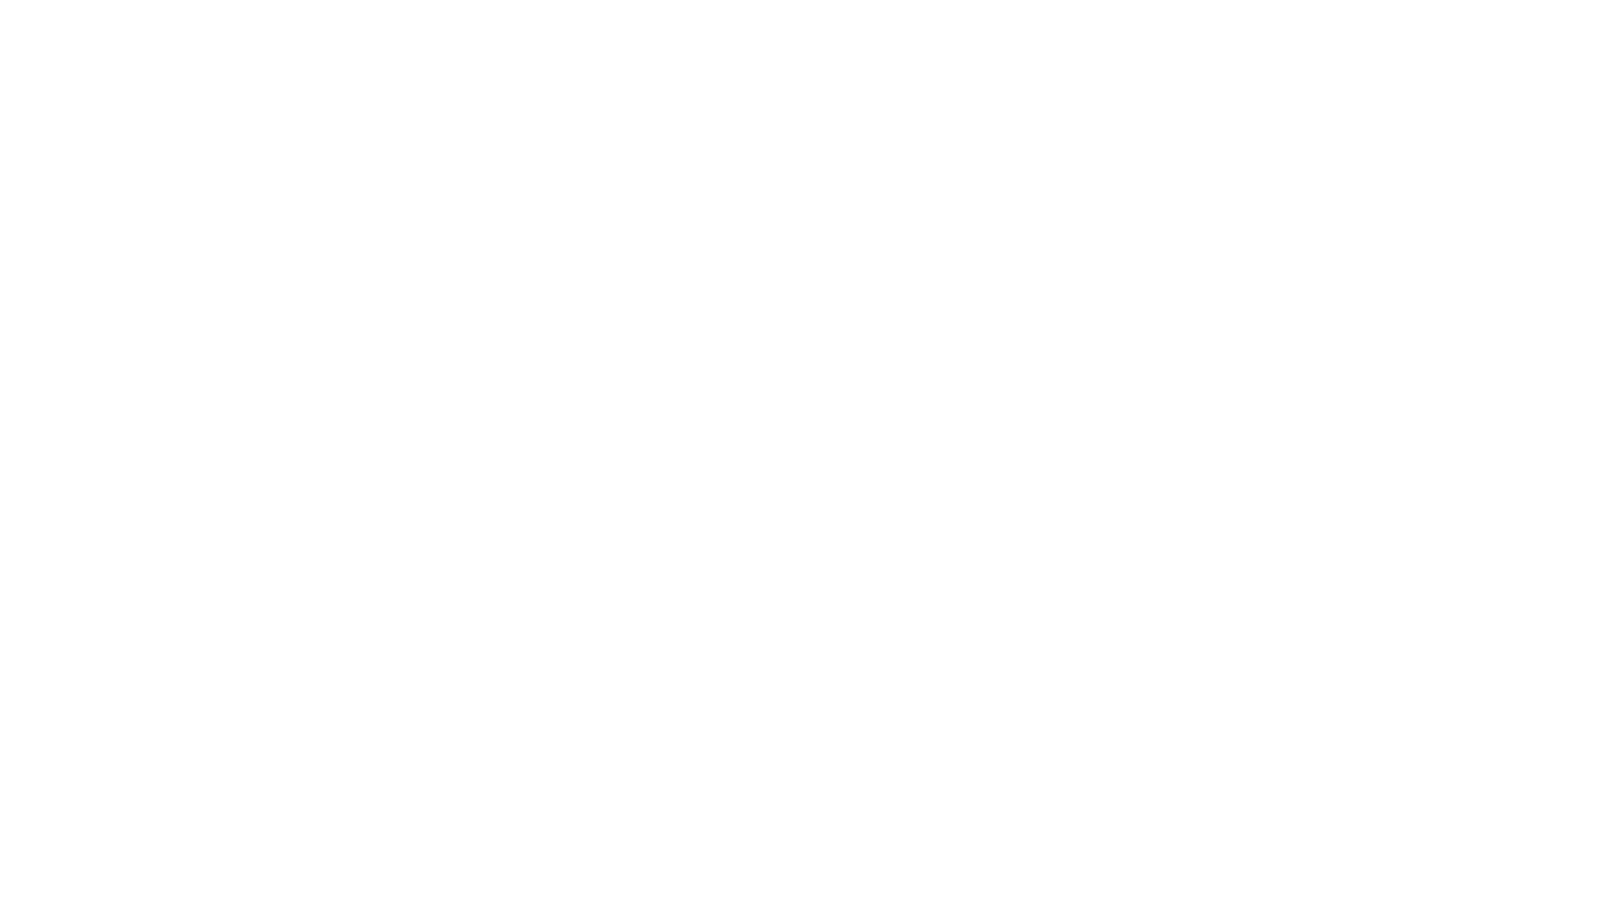 Secomapp Shopify apps provider